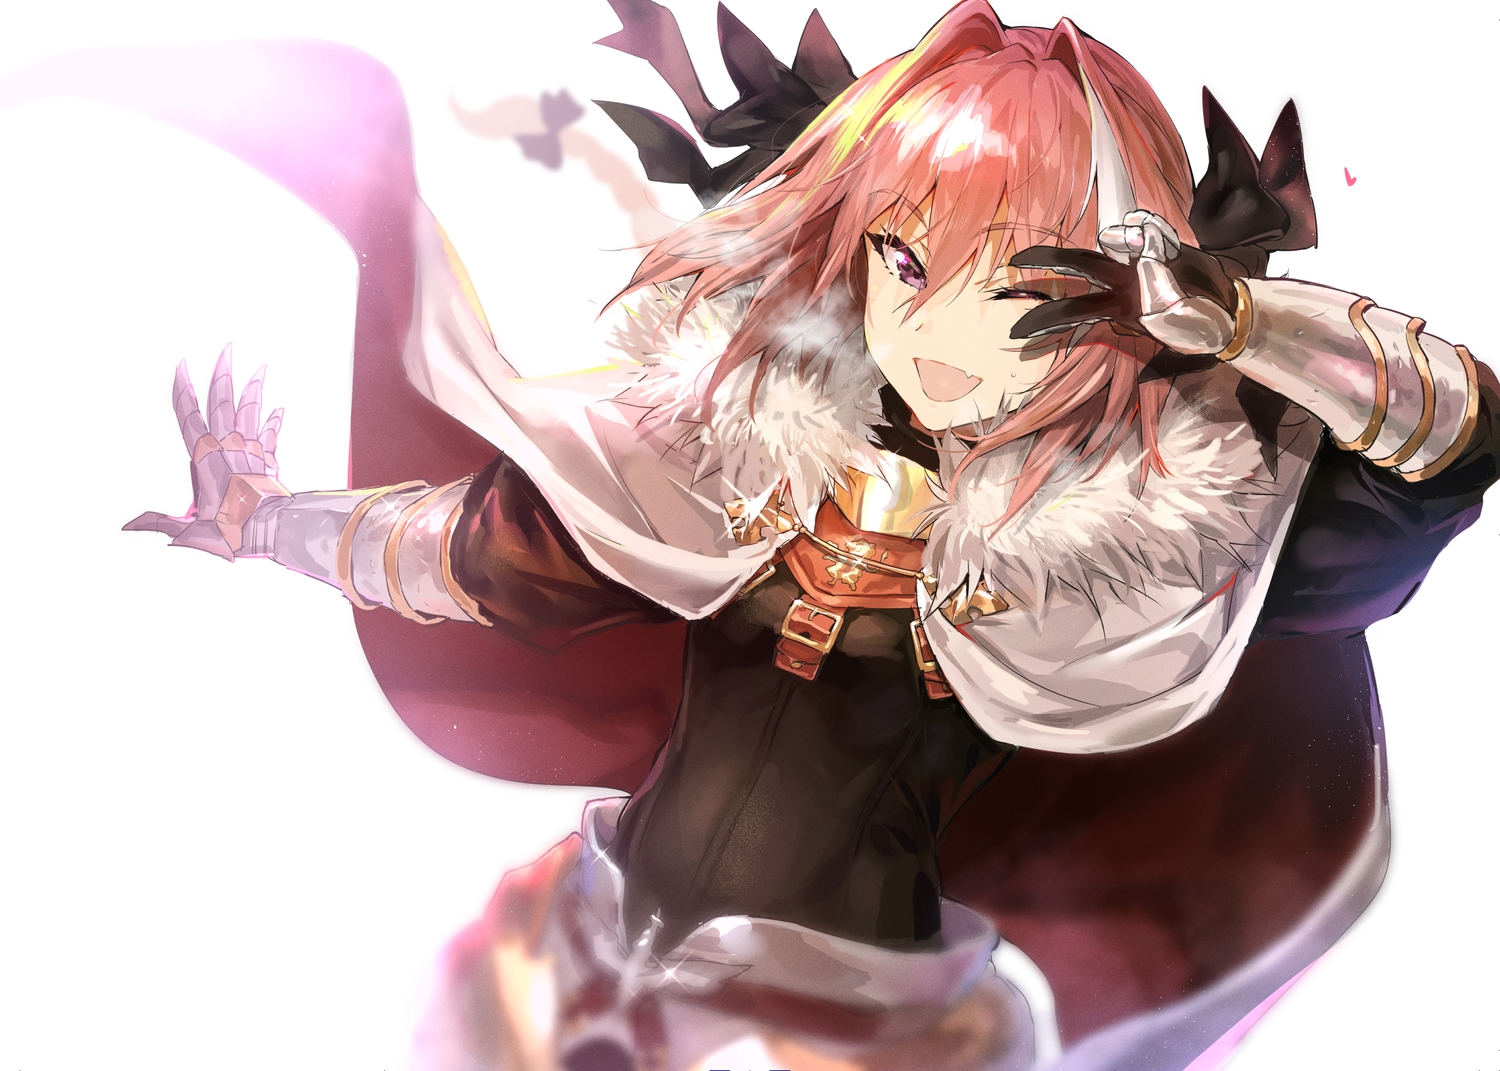 all_male armor astolfo bow cape fang fate/grand_order fate_(series) gloves long_hair male pink_hair ponytail purple_eyes shiroinuchikusyo trap wink